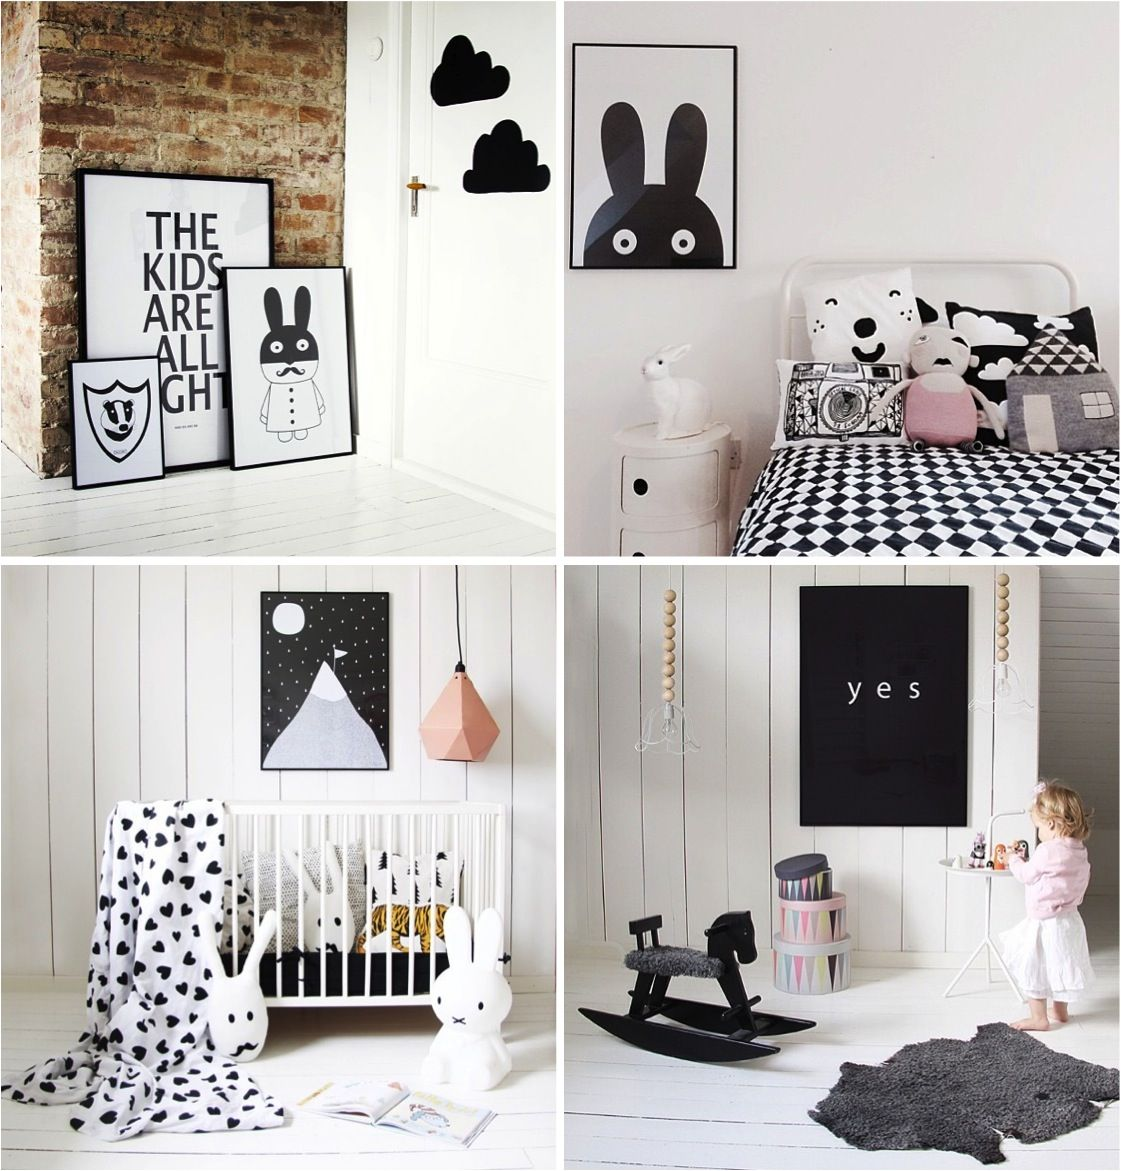 Kids Bedroom Black And White ebabee likes:playful black and white posters for kids bedrooms